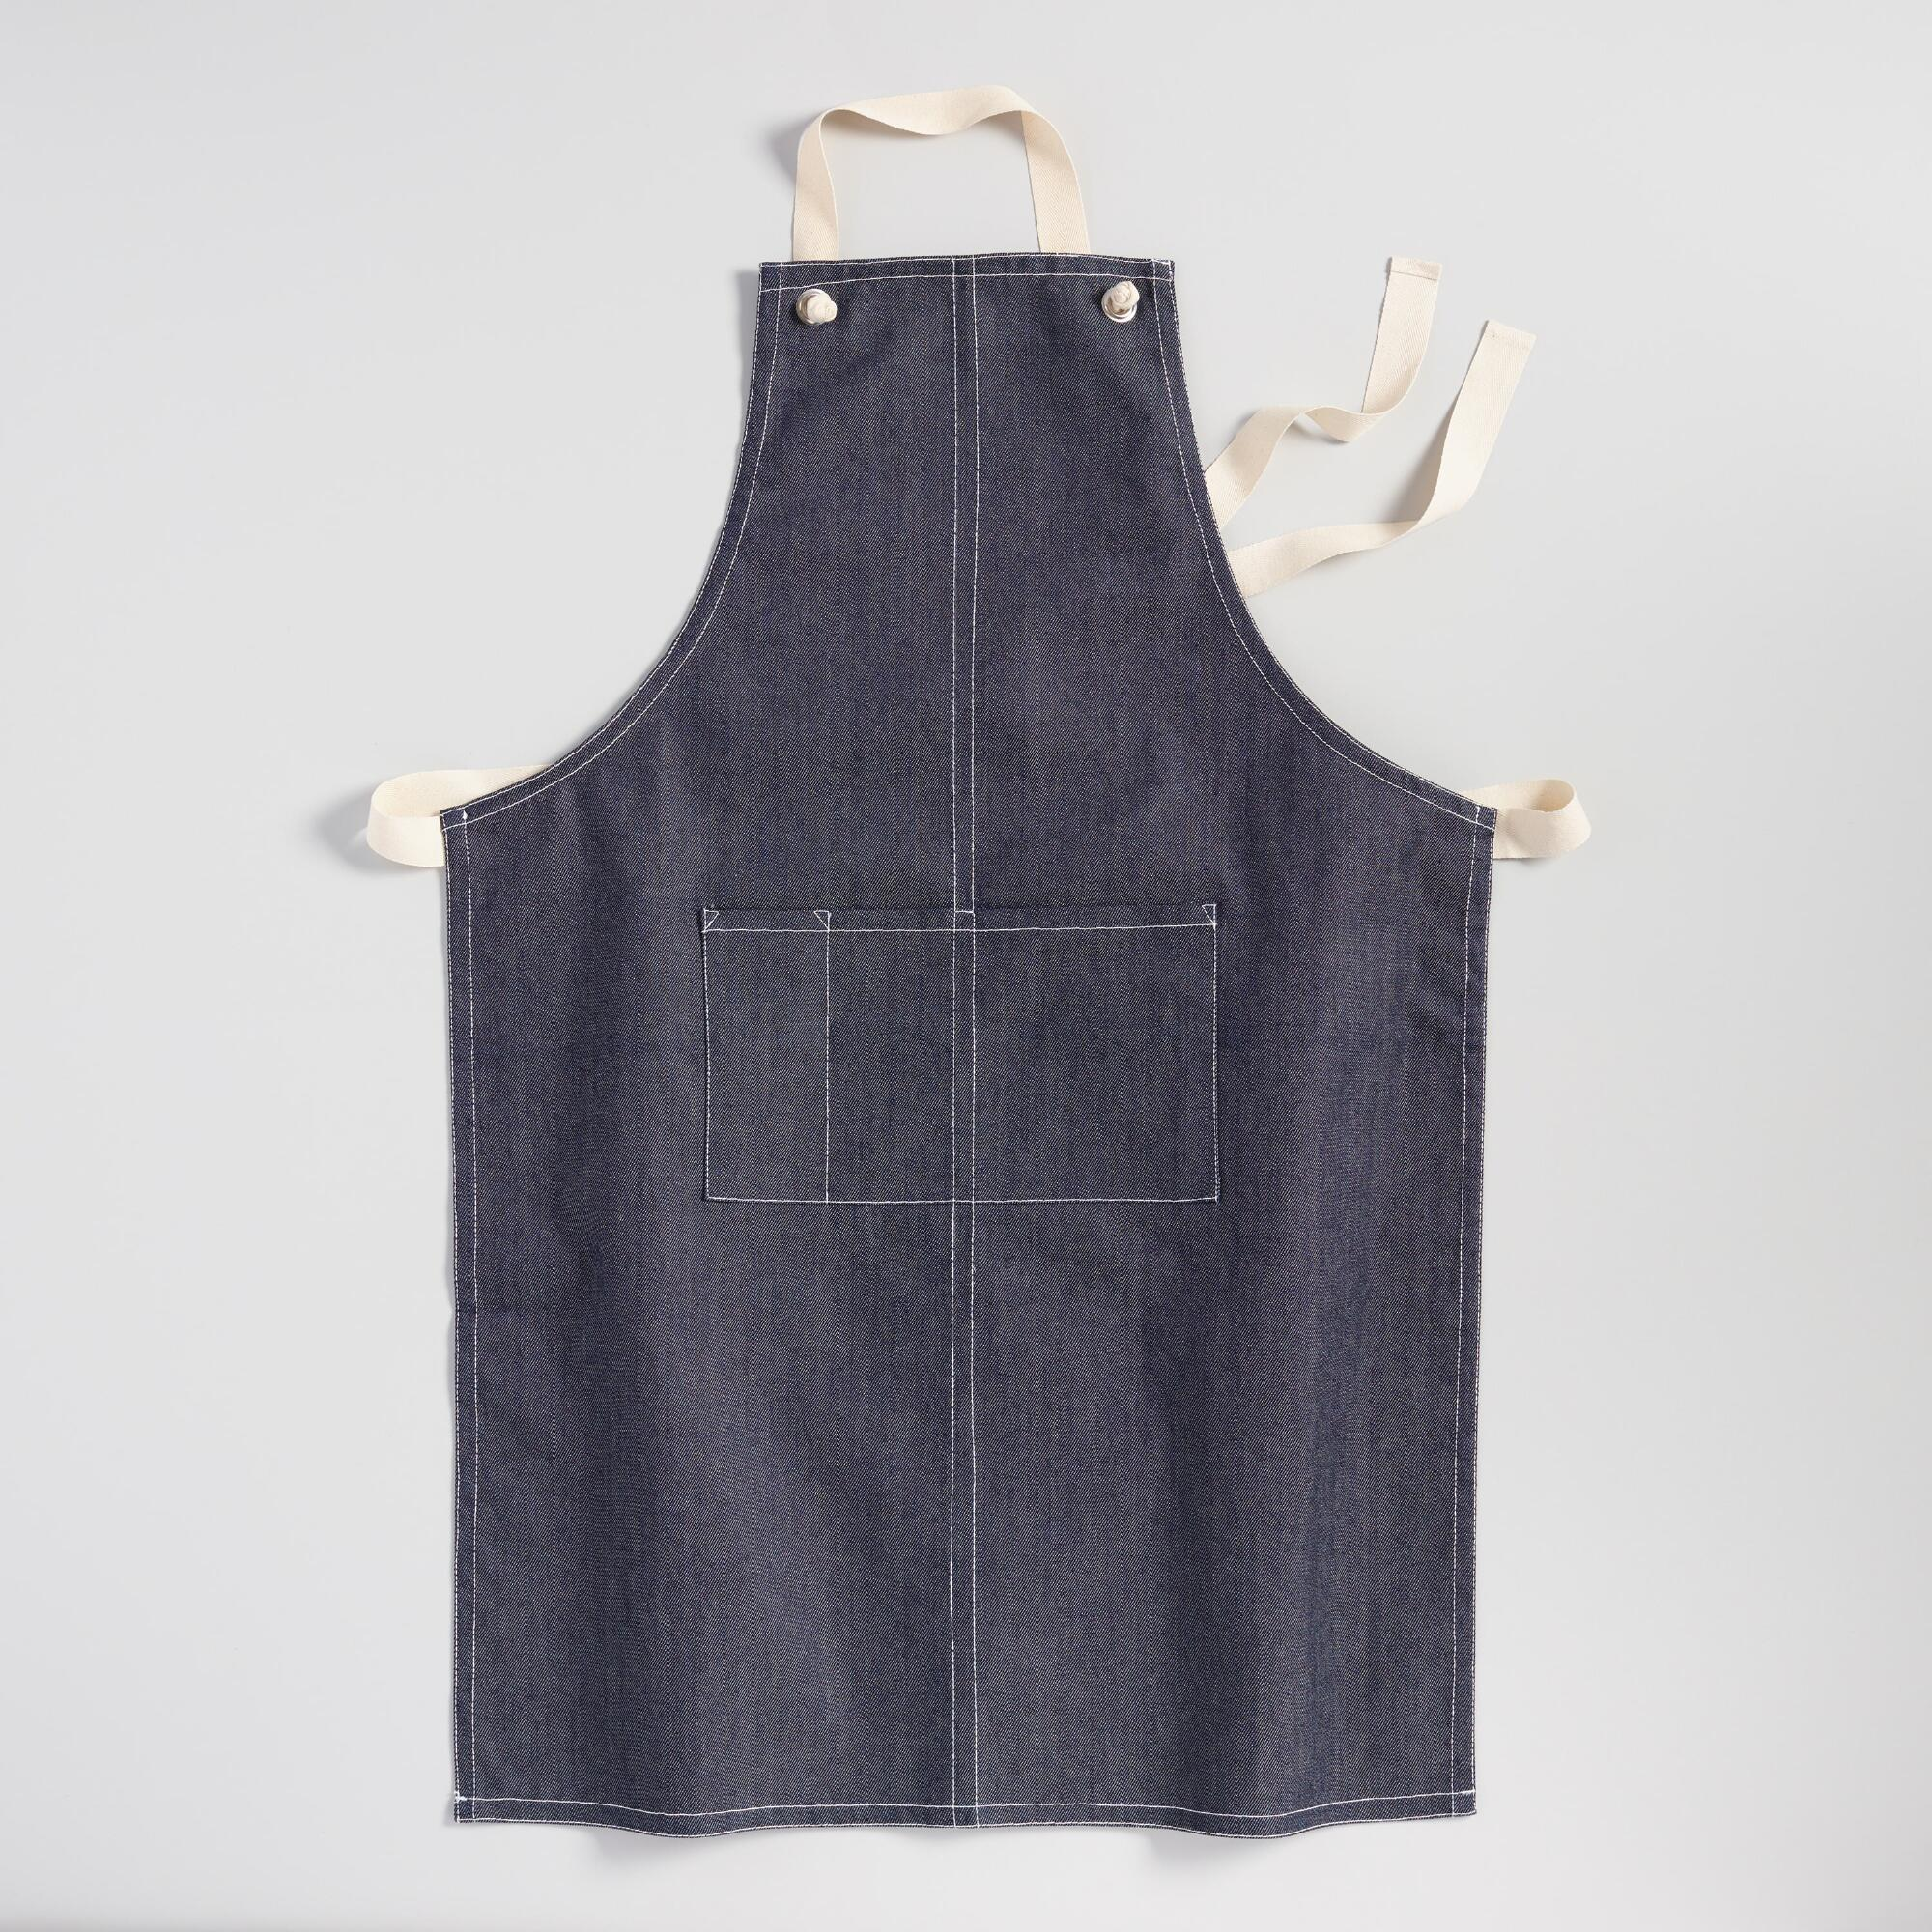 Vintage Aprons, Retro Aprons, Old Fashioned Aprons & Patterns Denim Chef Style Apron Blue - Cotton by World Market $19.99 AT vintagedancer.com